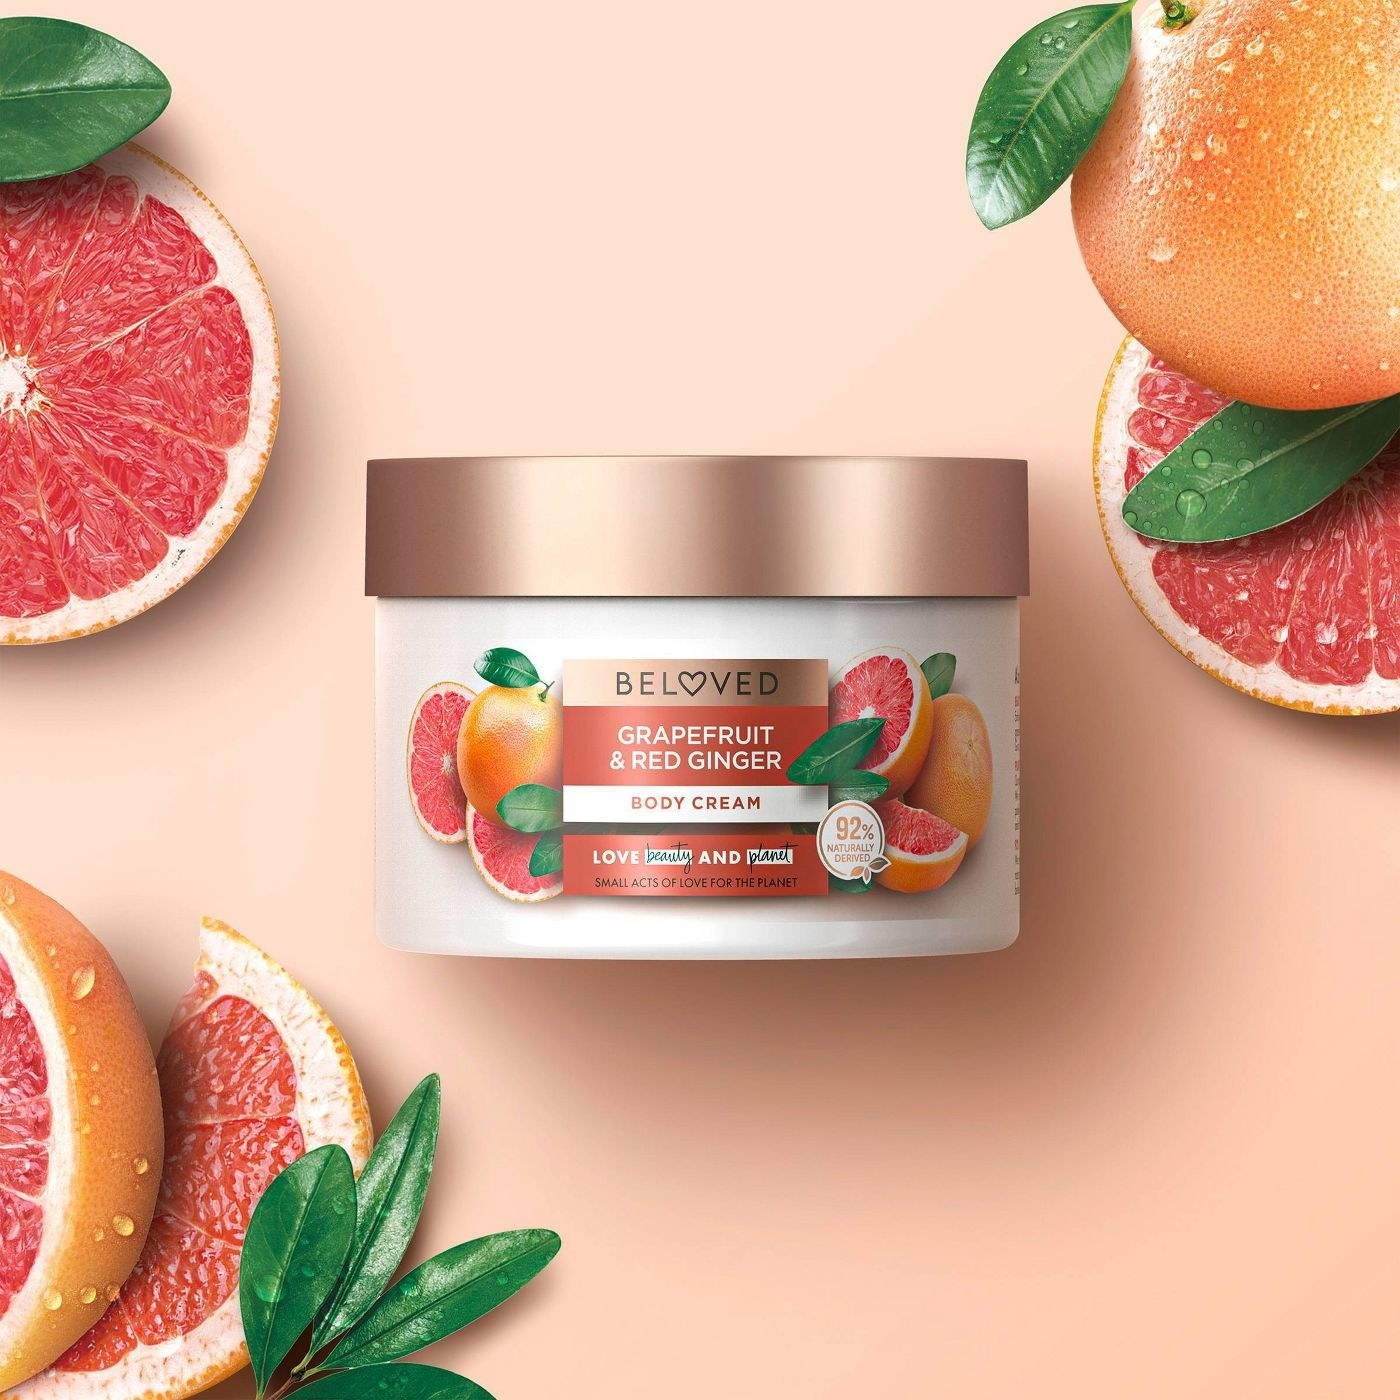 Grapefruit lotion with orange and red details